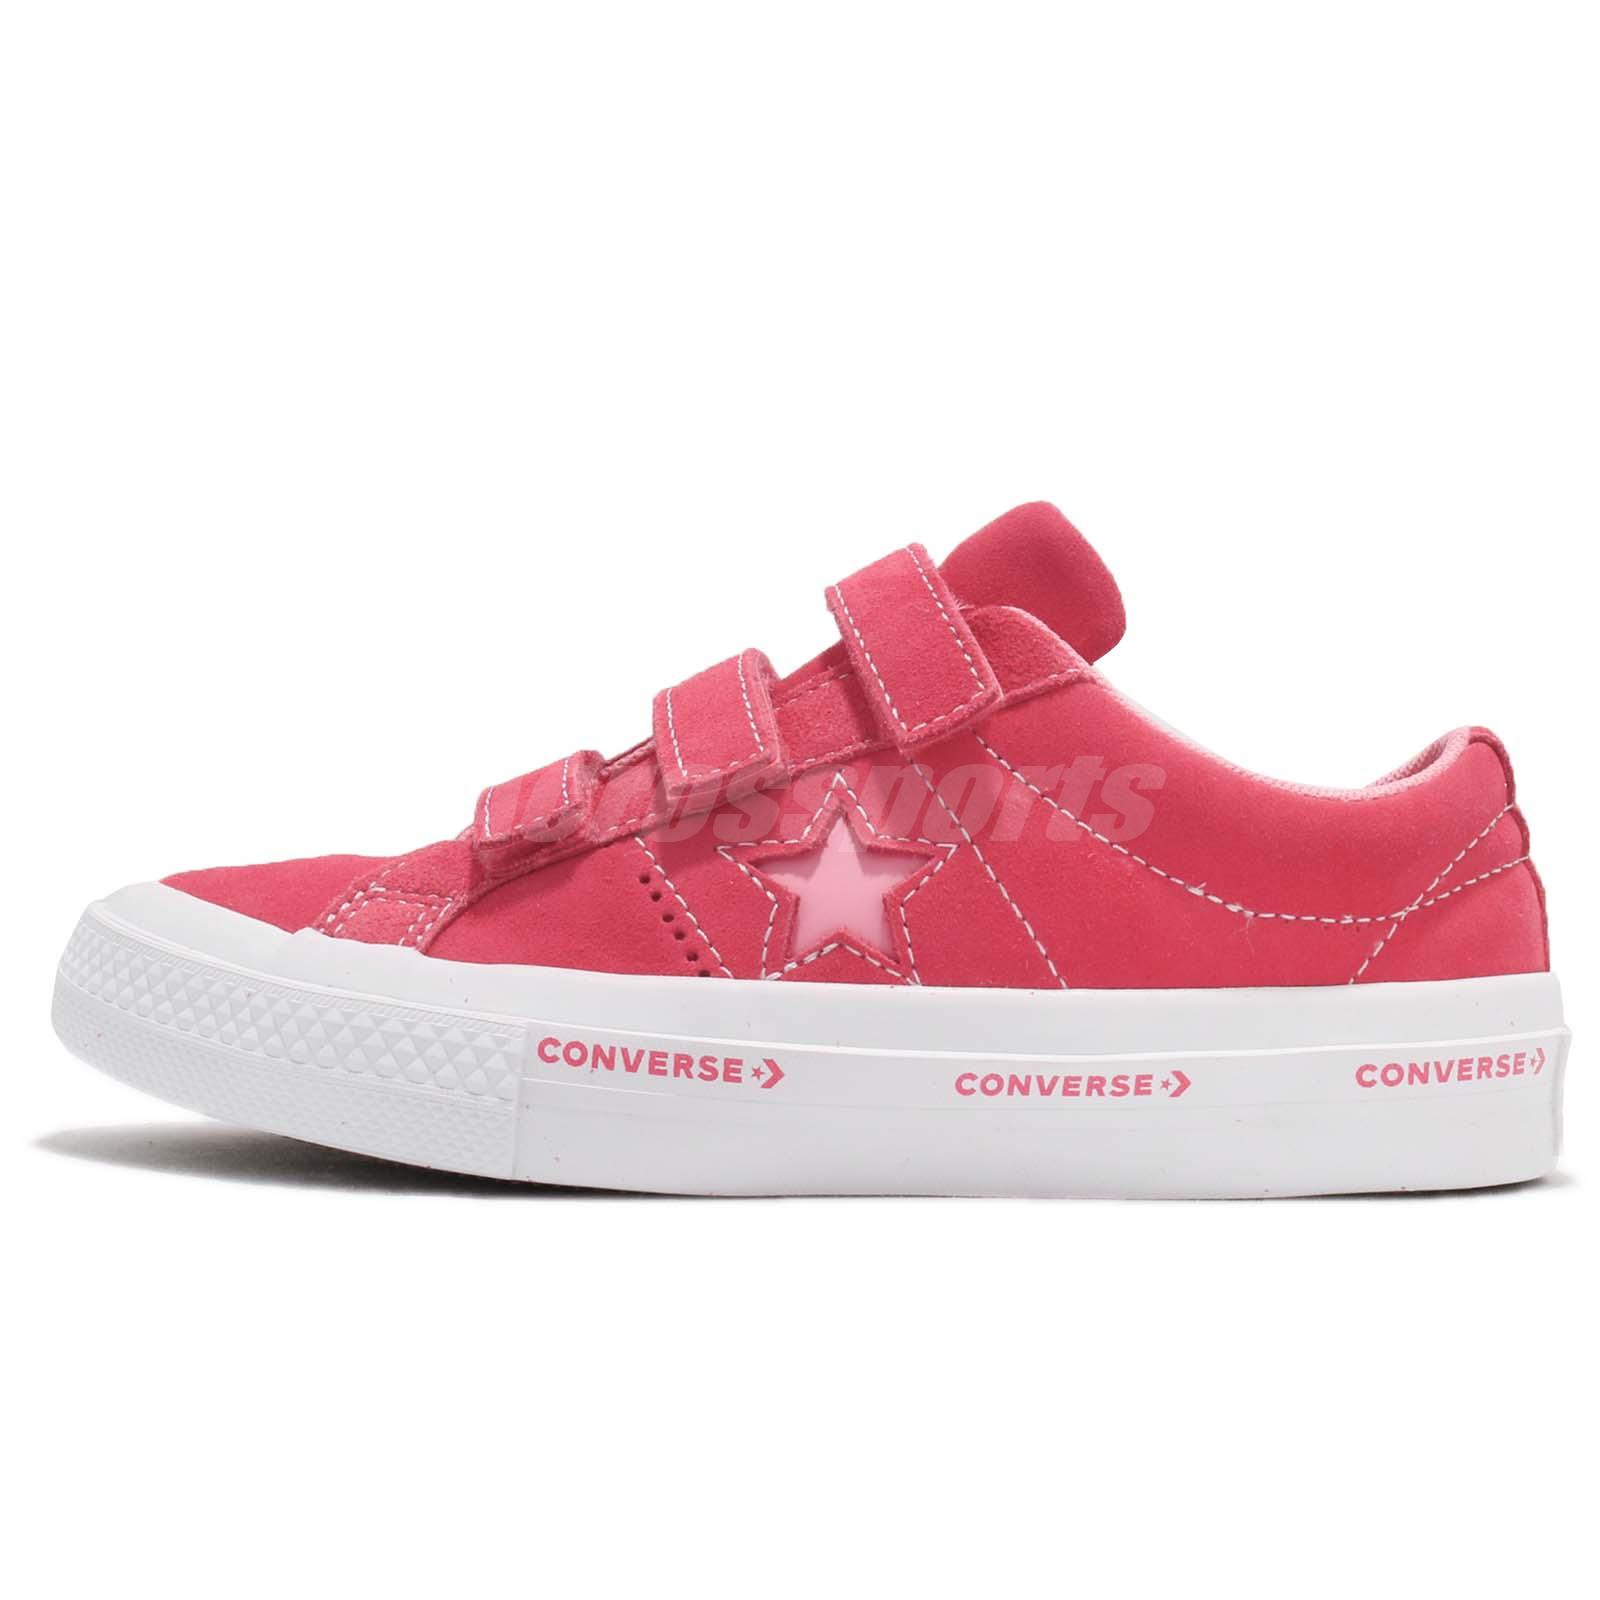 9cf2d01da0c9 Converse One Star 3V Strap OX Pink White Kids Youth Women Shoes Sneakers  660038C